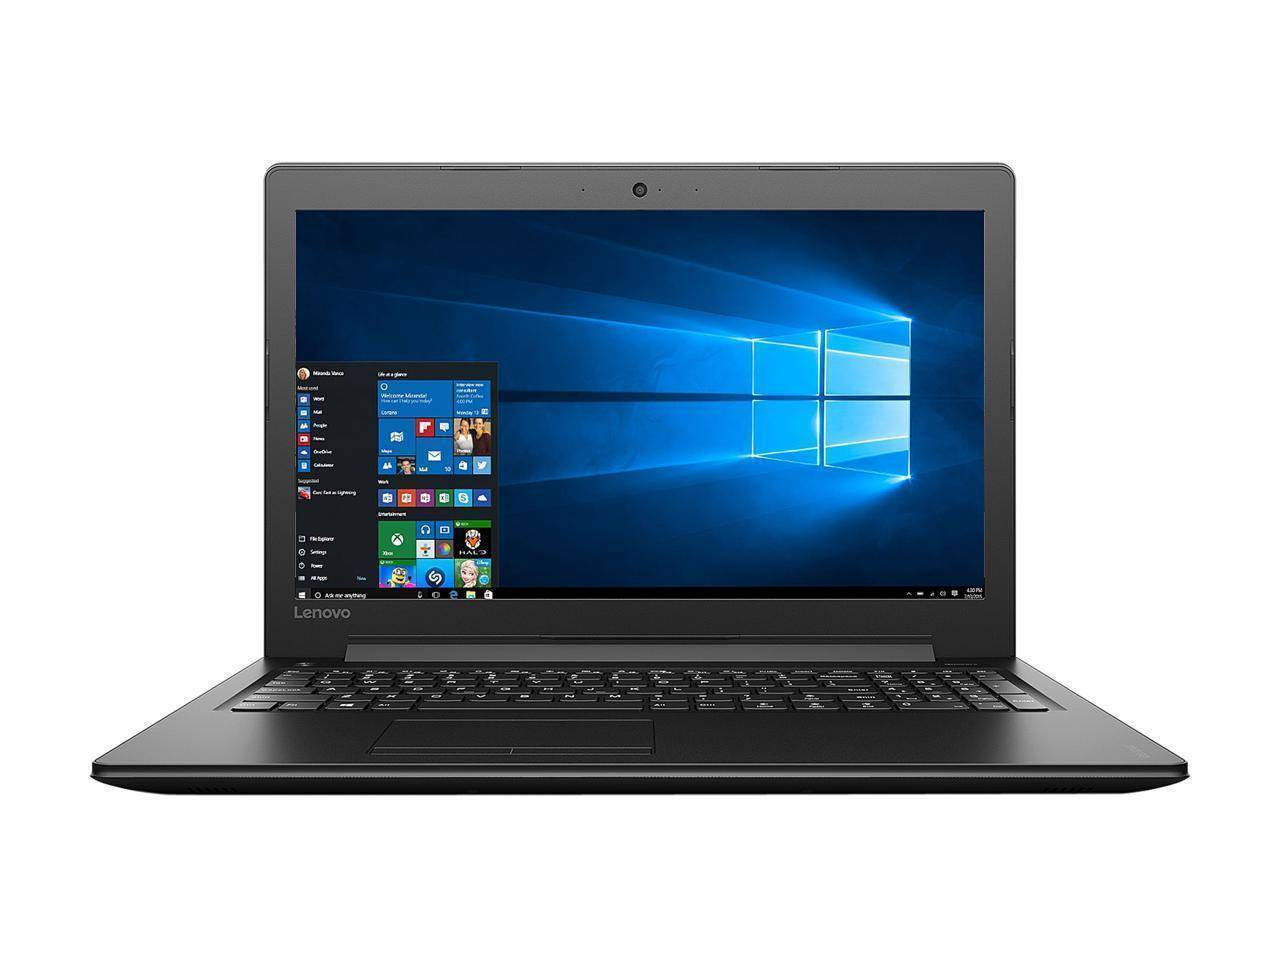 Lenovo ideapad 310 80st0025us and 80st001nus 15 inch black laptop review